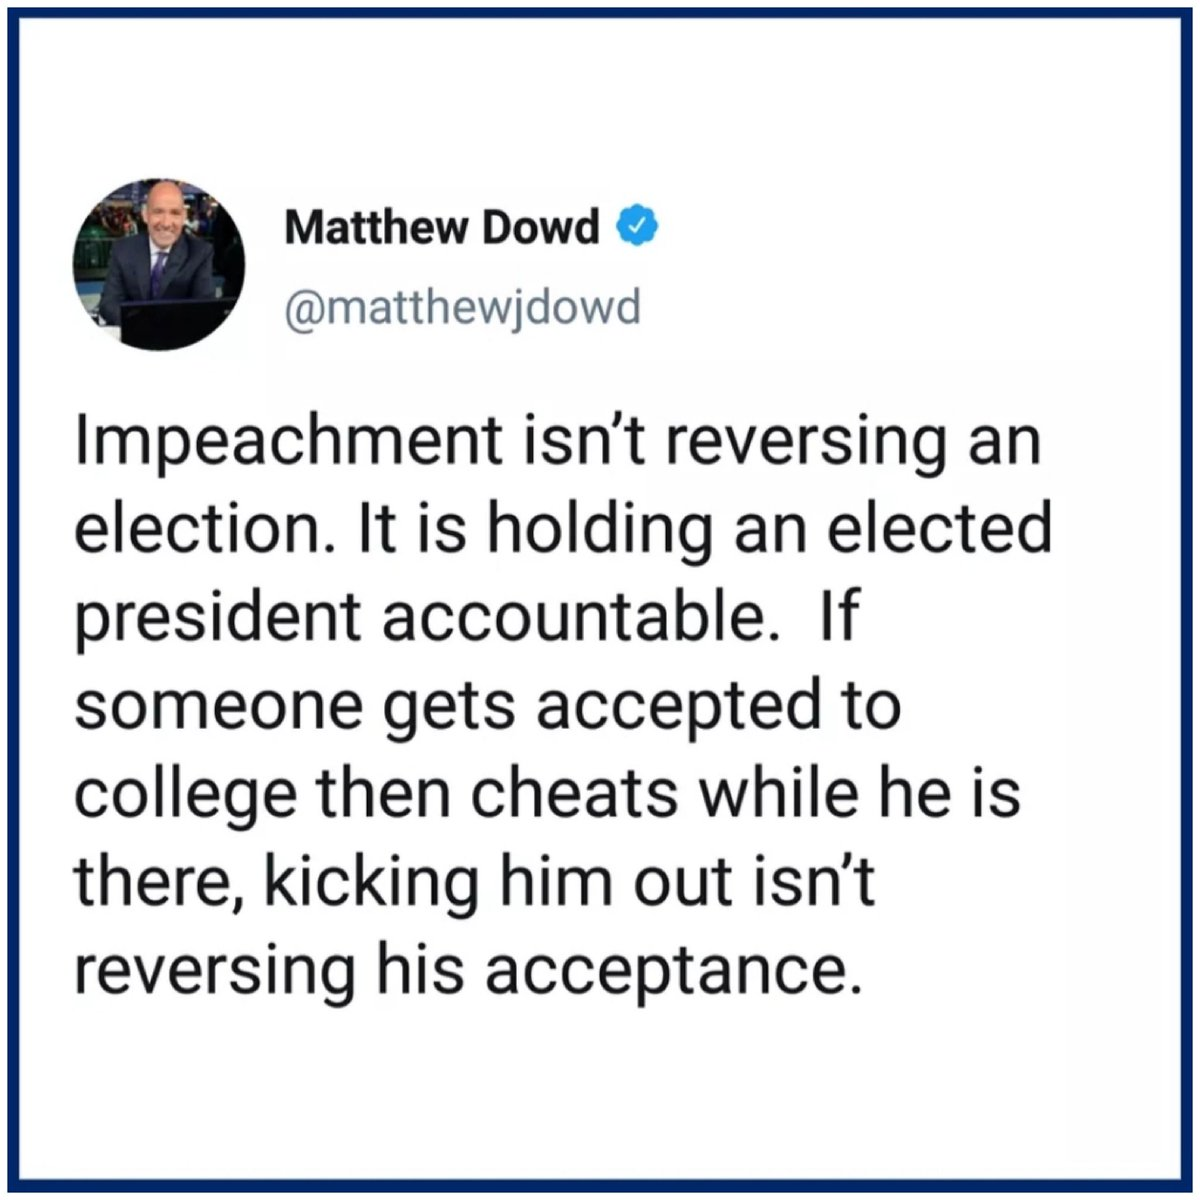 #ImpeachTrump #WorstPresidentEver #DonaldTrump #Narcissist #Misogynist #Prejudice #Ignorance #Bigotry #Scammer #DonTheCon #ConArtist #ThinSkin #Clown #FakePresident #Trash #HatefulMan #Moron #Hypocrite #Joke #PutinsBitch #Sexist #Fraud #Lier #SmallHands #Homophobic #Xenophobic